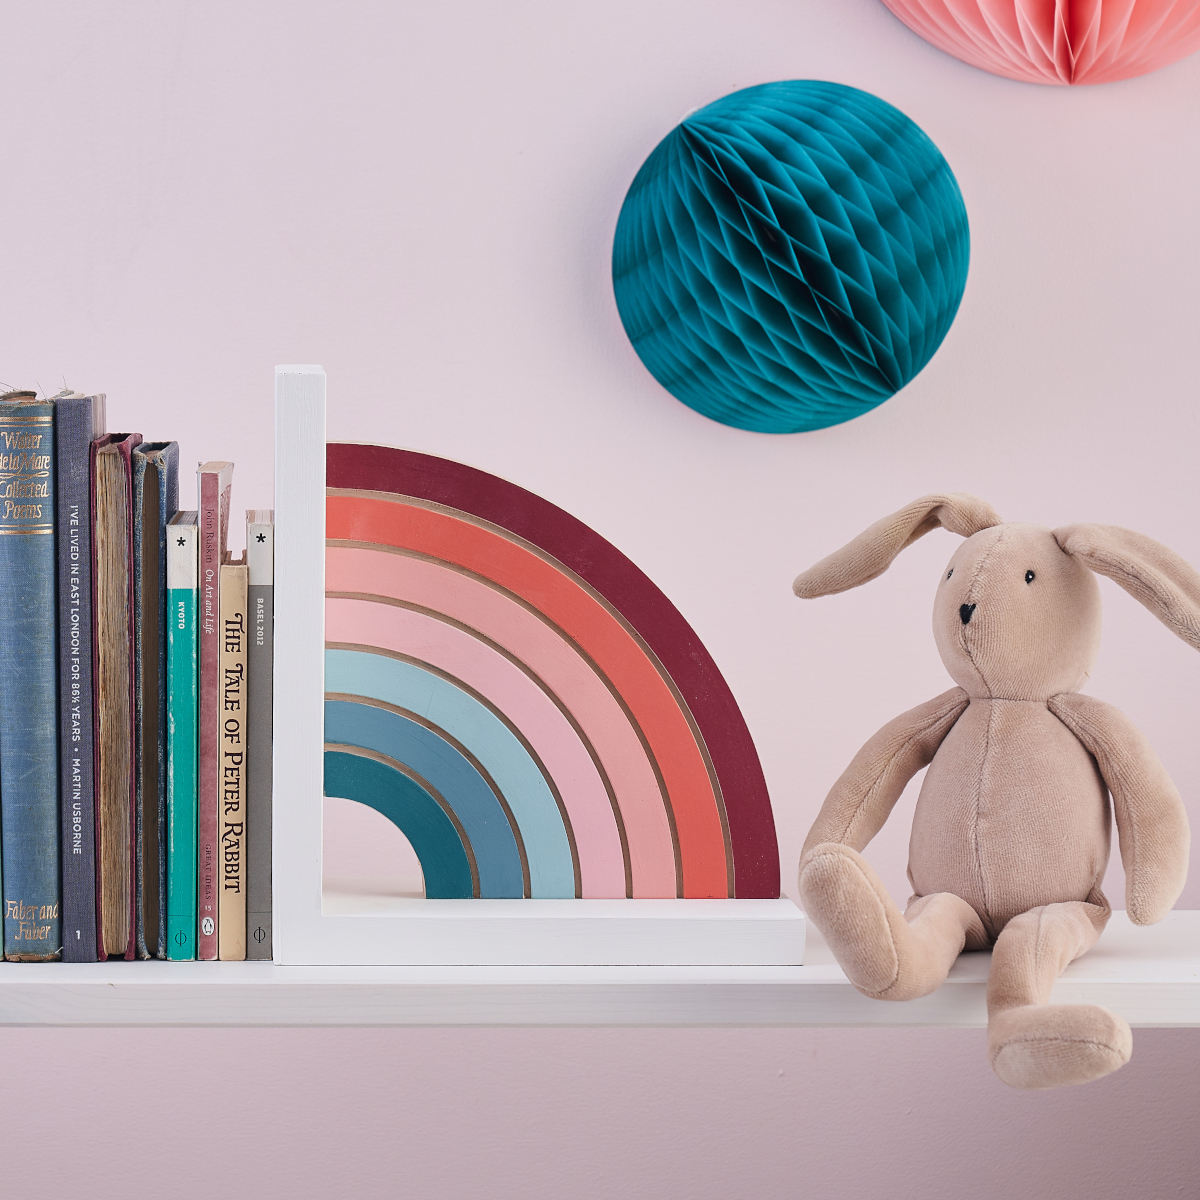 Rainbow bookend from Bombus as a perfect birthday gift for her